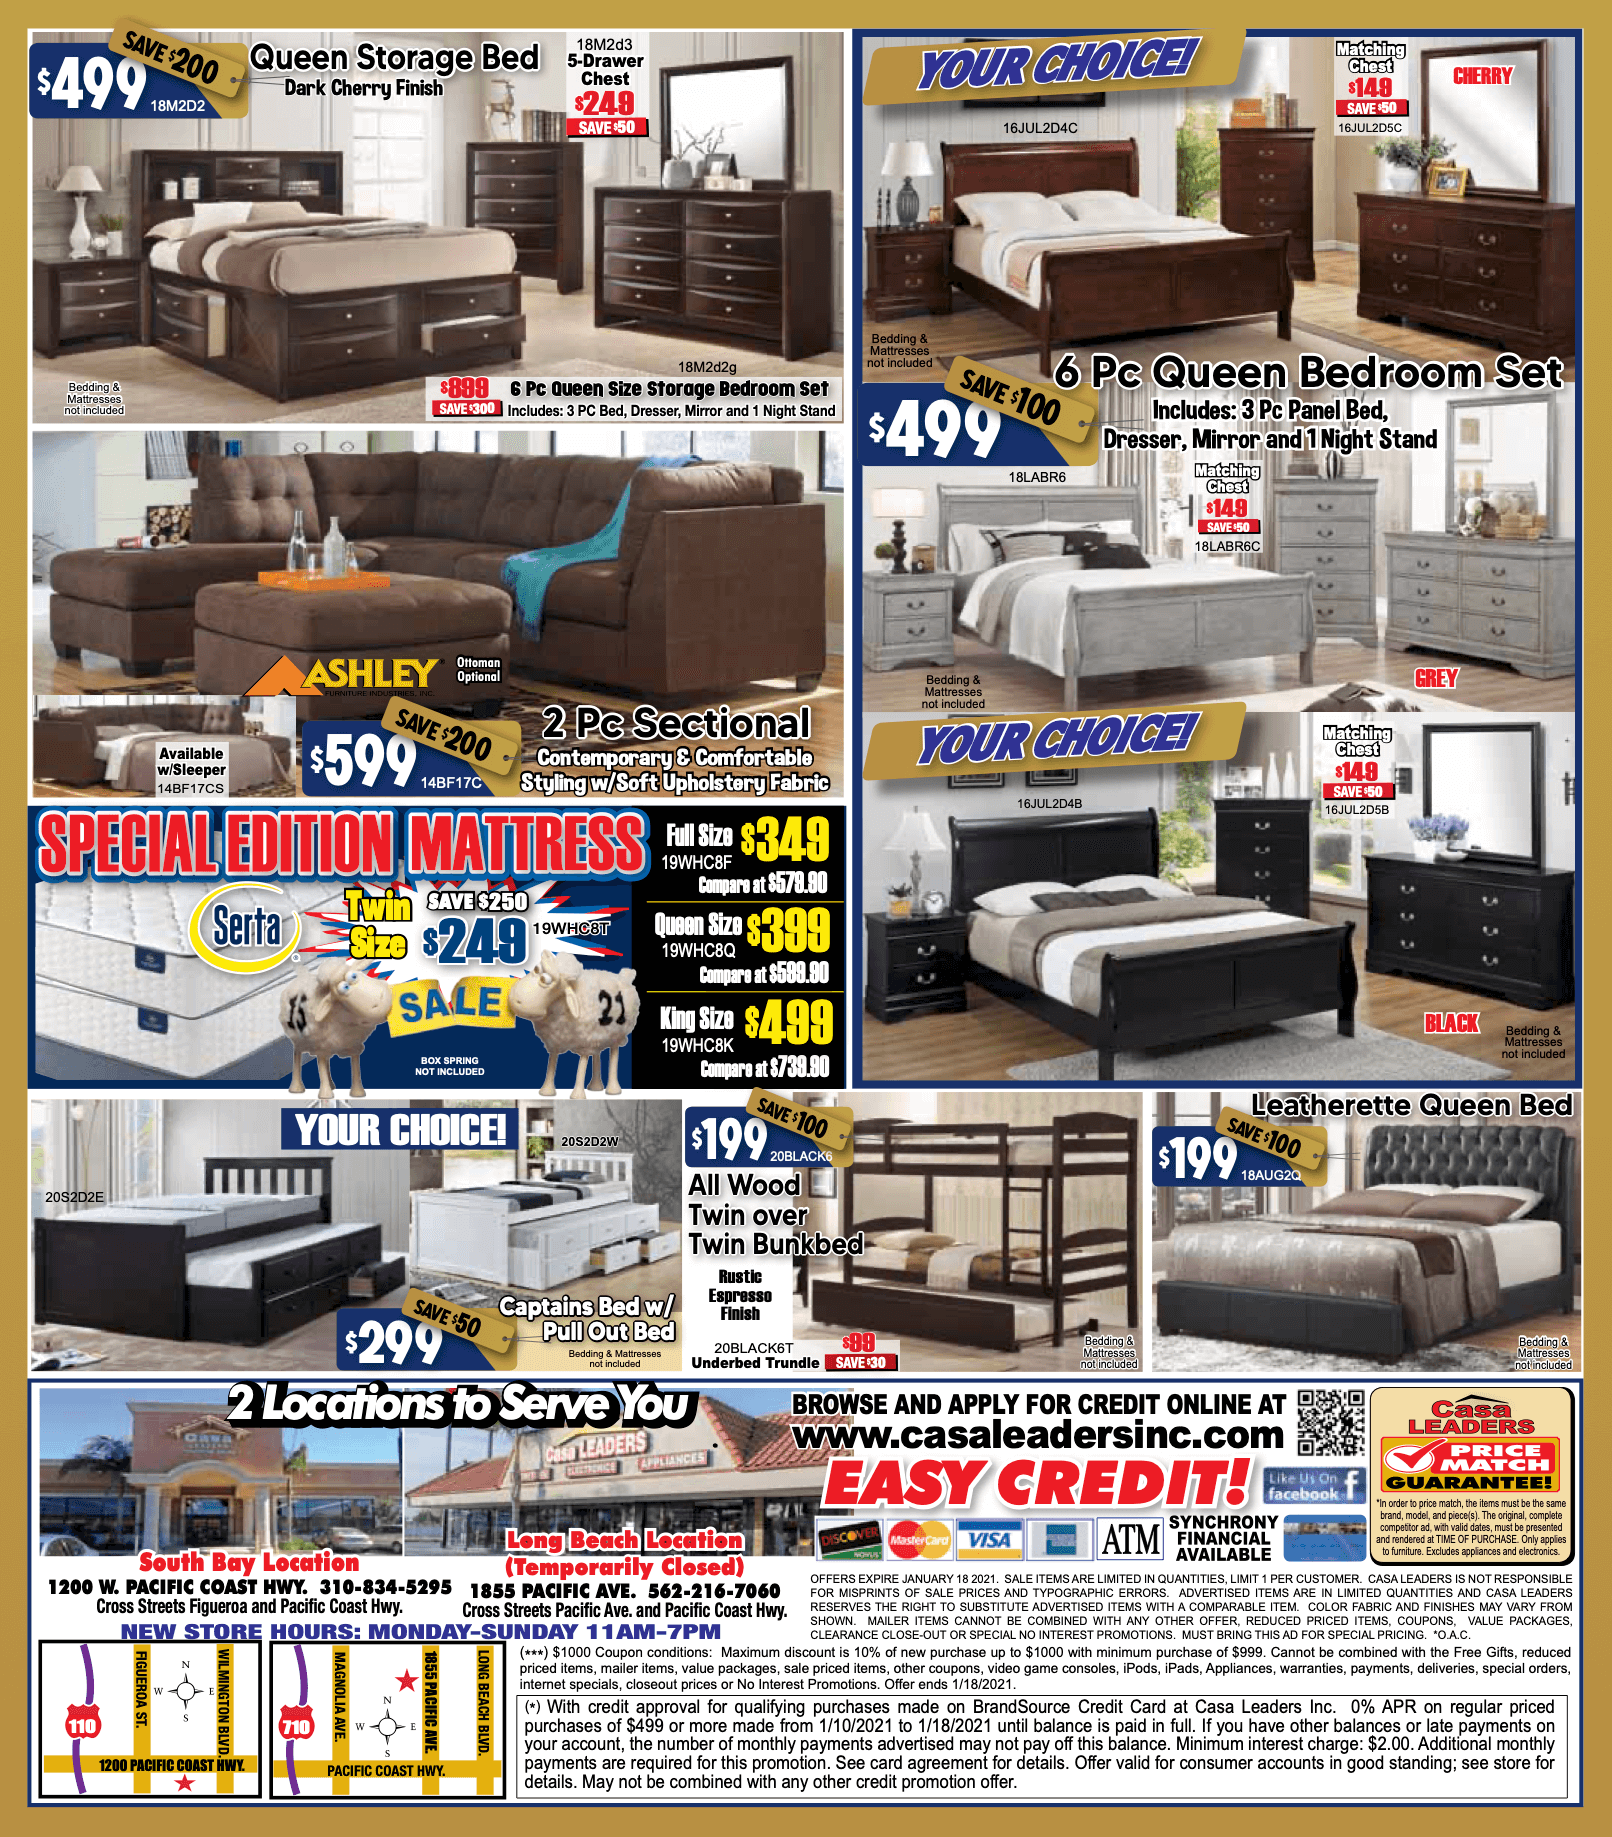 0% Interest and Downpayment Sale page 2 ad flyer